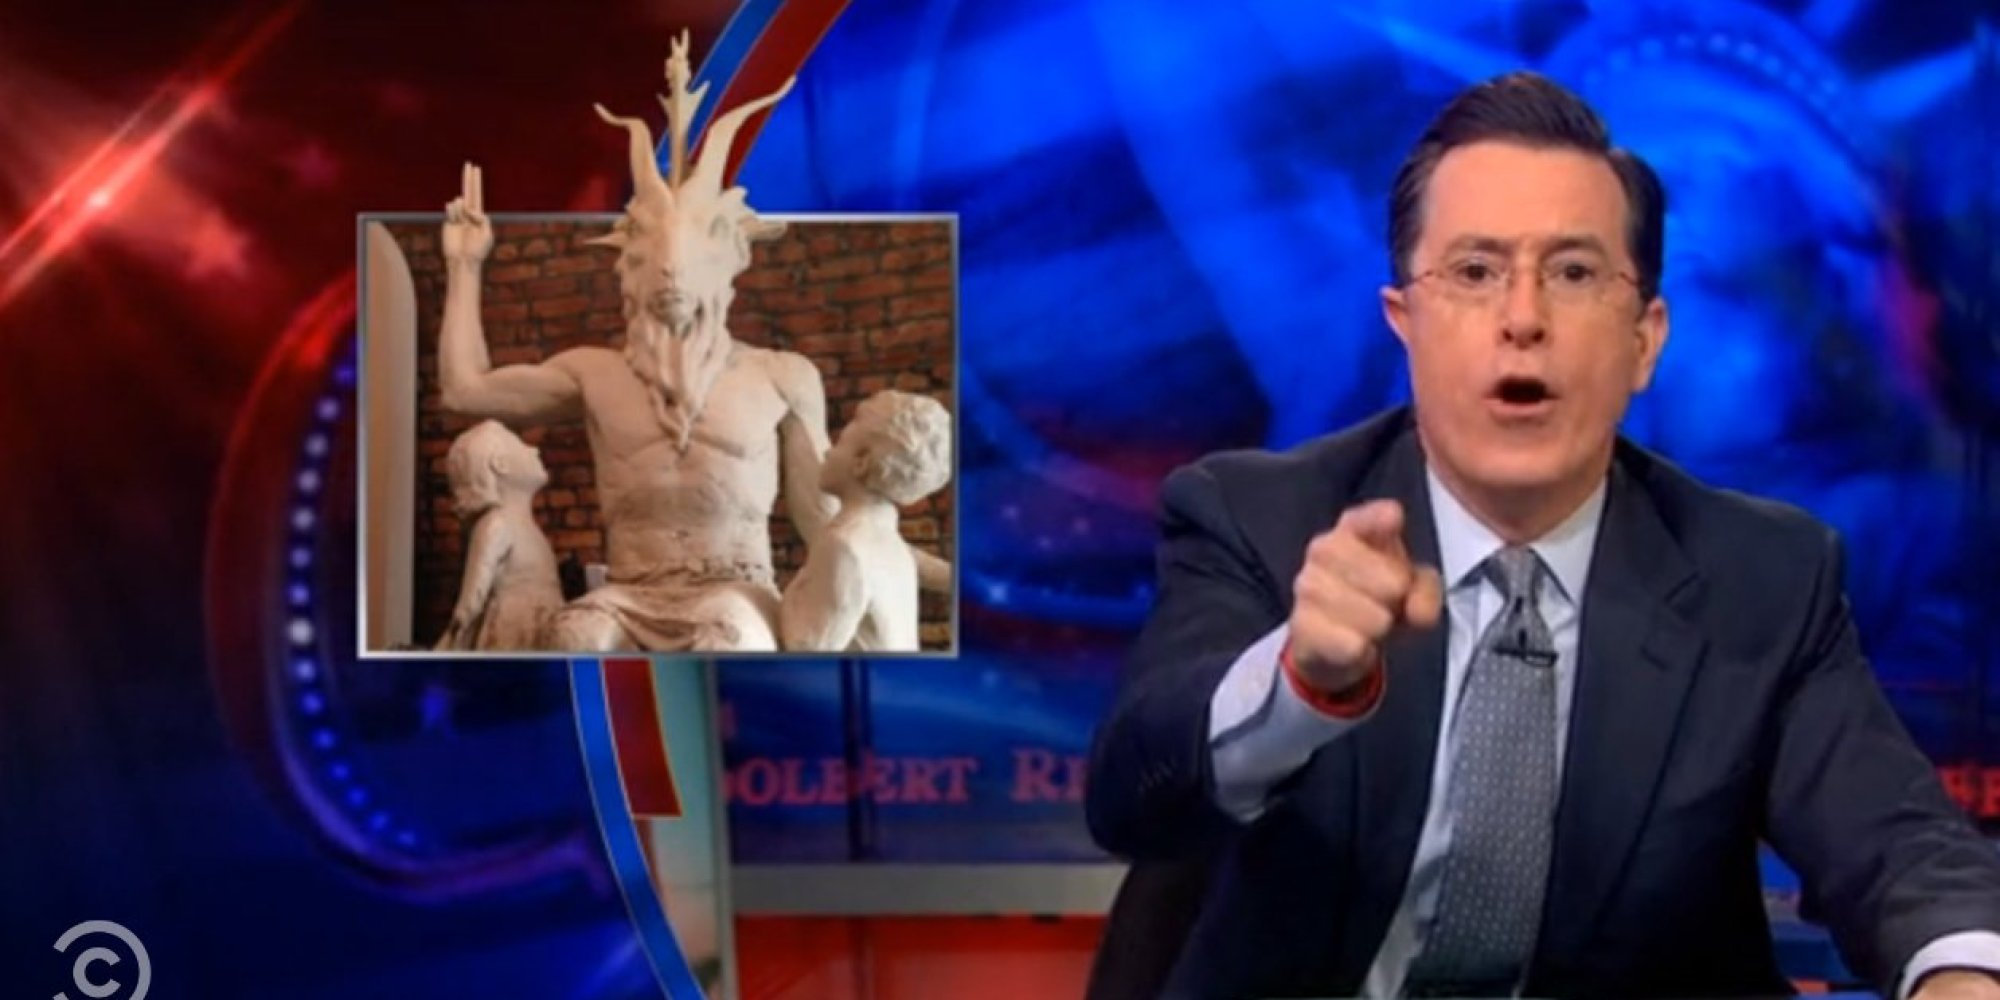 """stephen colbert on american jobs On tuesday's the late show, stephen colbert focused on the decision by trump's palm beach resort mar-a-lago to hire foreign workers instead of colbert went on to say that mar-a-lago had the """"incentive to make the jobs look bad to american workers,"""" which they did by noting there """"no tips"""" and."""